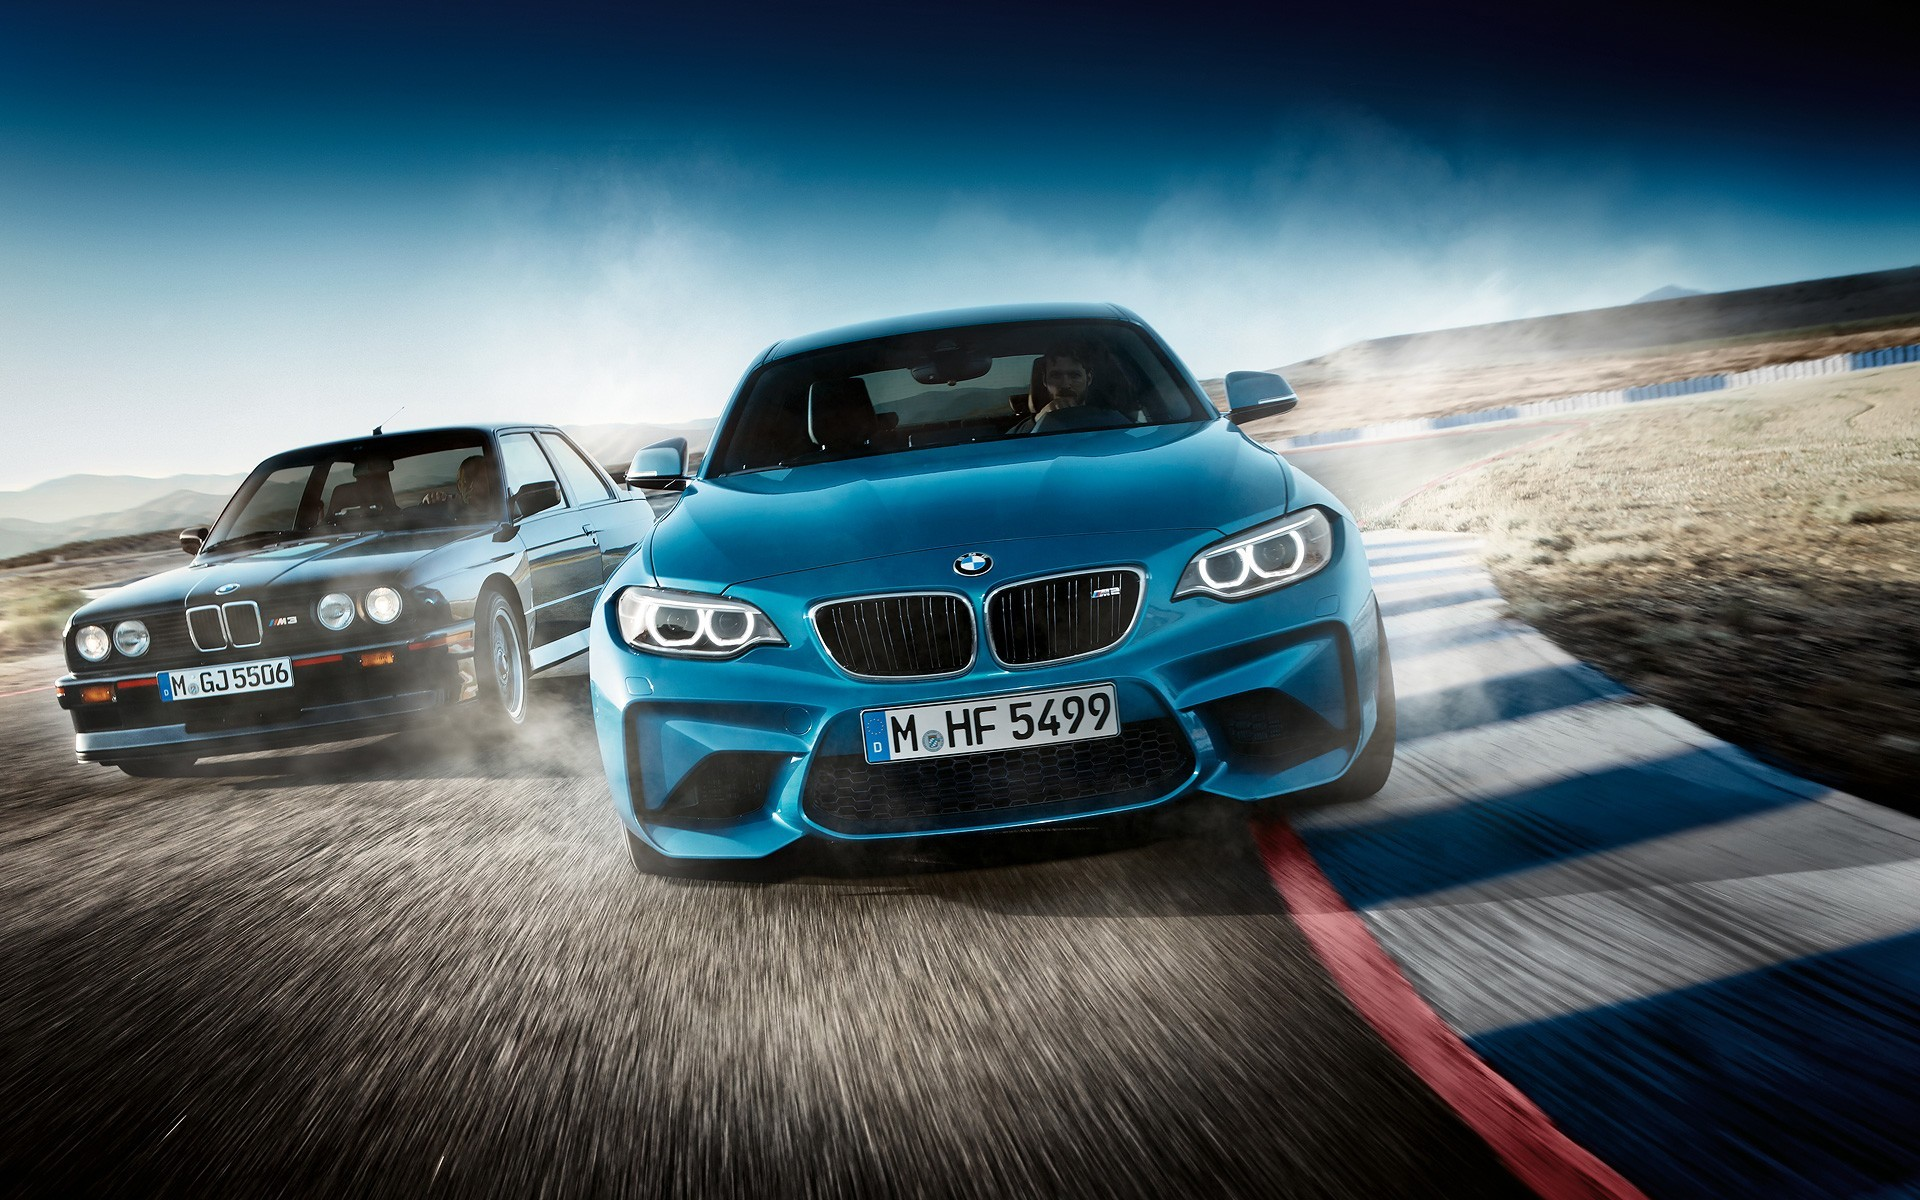 bmw wallpaper ·① ➄ download free awesome wallpapers of bmw cars